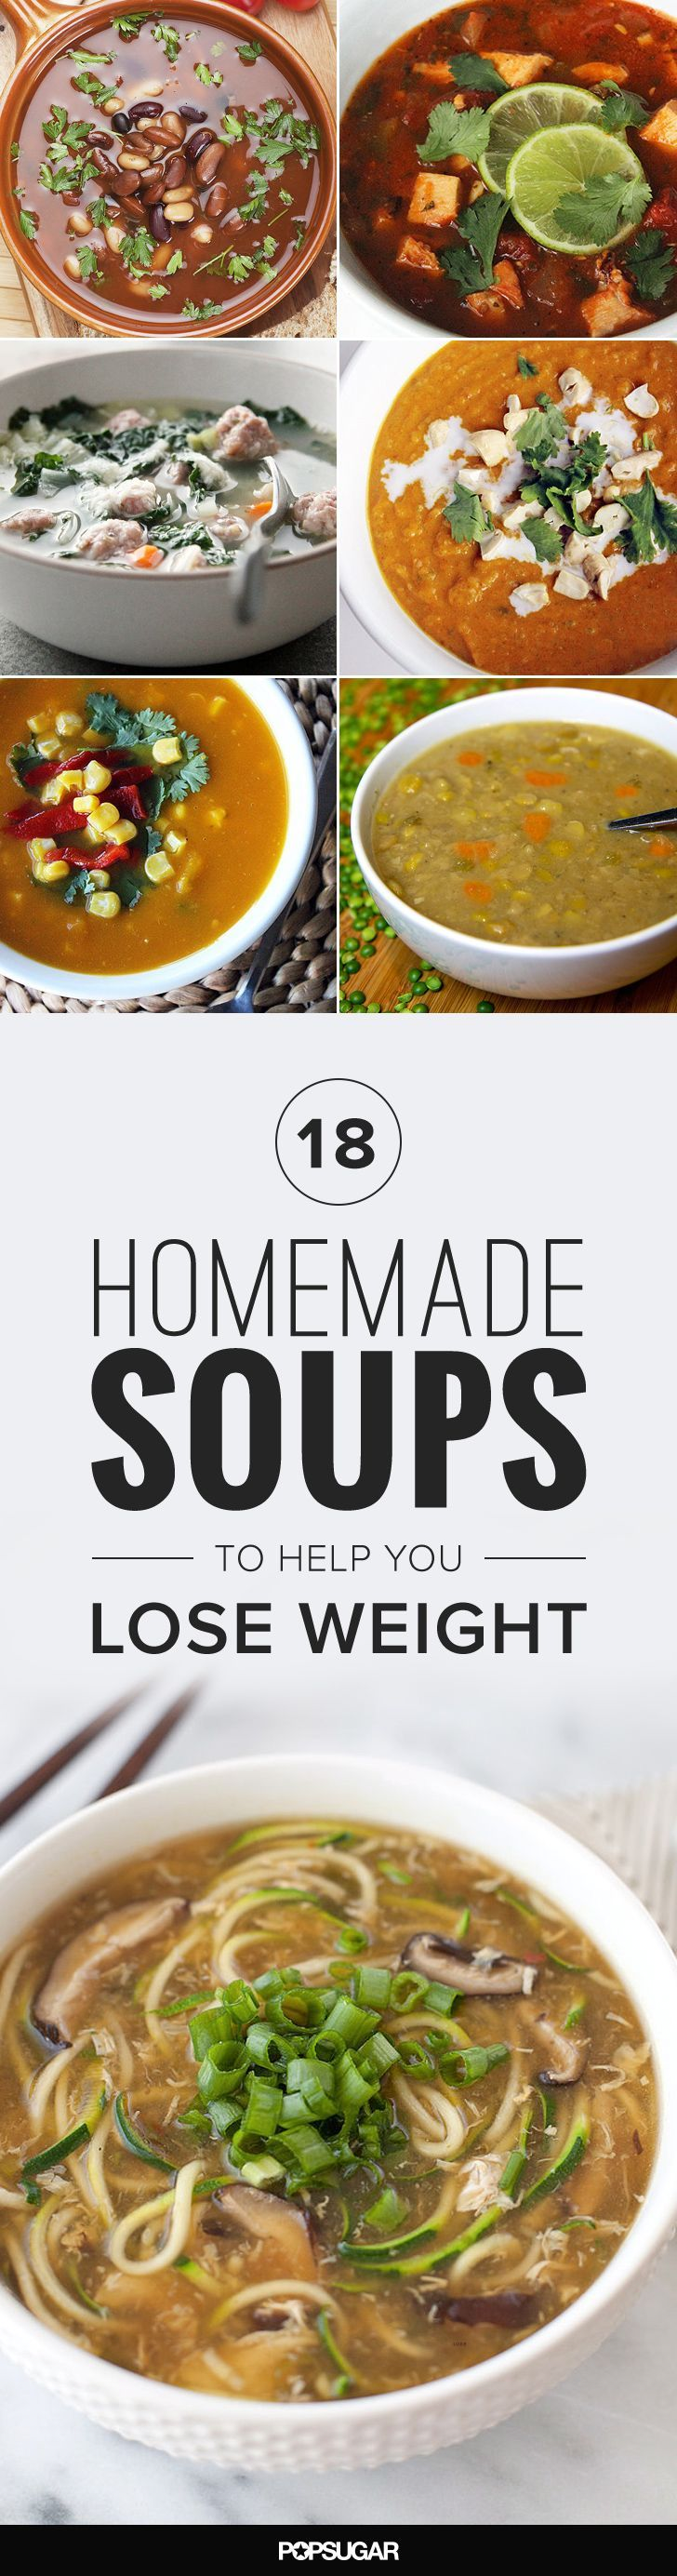 "If you're looking to lose weight, celebrity trainer Joel Harper recommends serving up soup for dinner. ""Liquids are already broken down,"" he says, which means your body has to do less work when it comes to digestion. This can help keep you regular, banish bloat, and support weight-loss goals!"